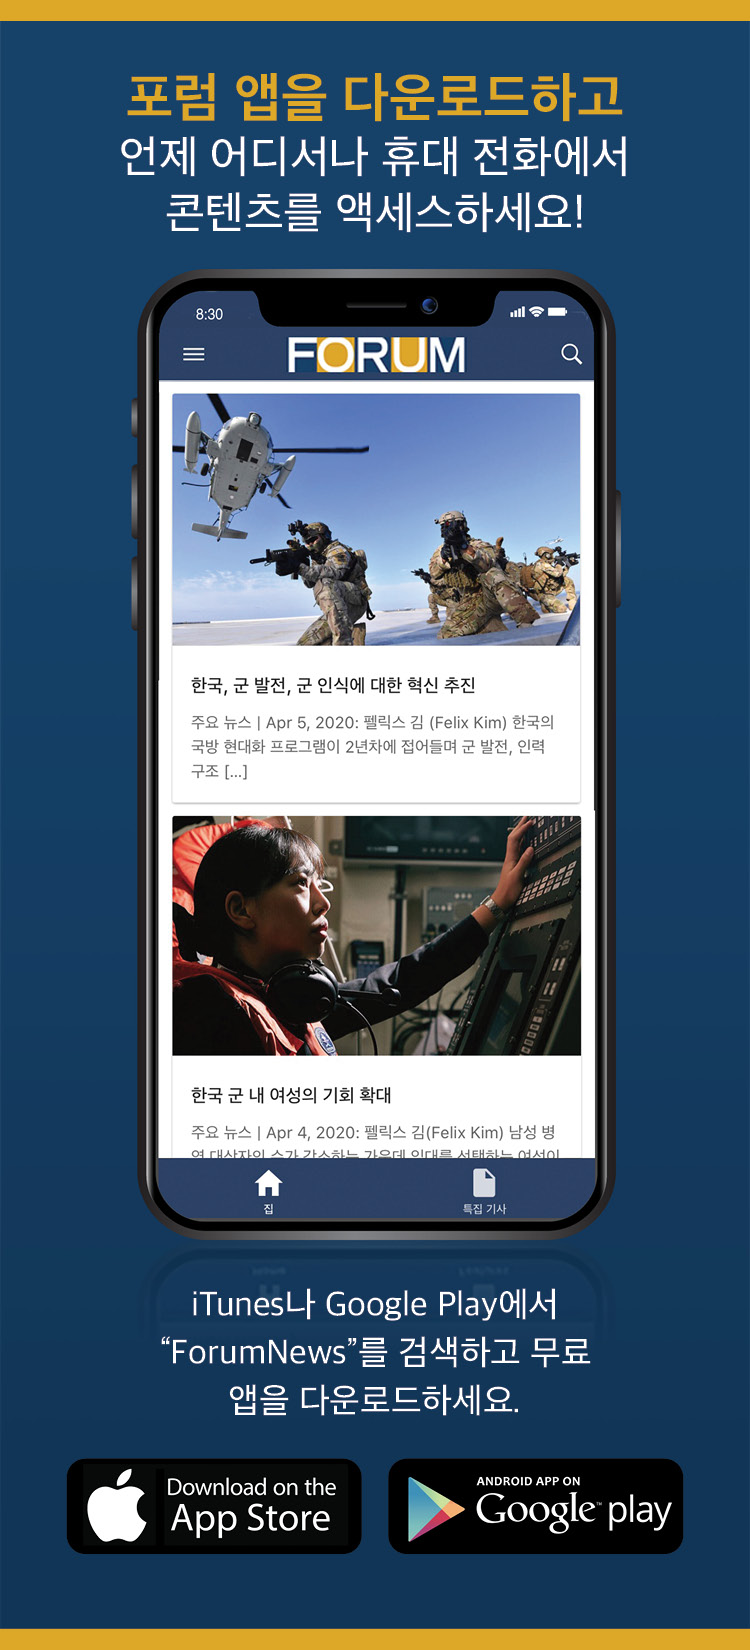 ForumApp Korean